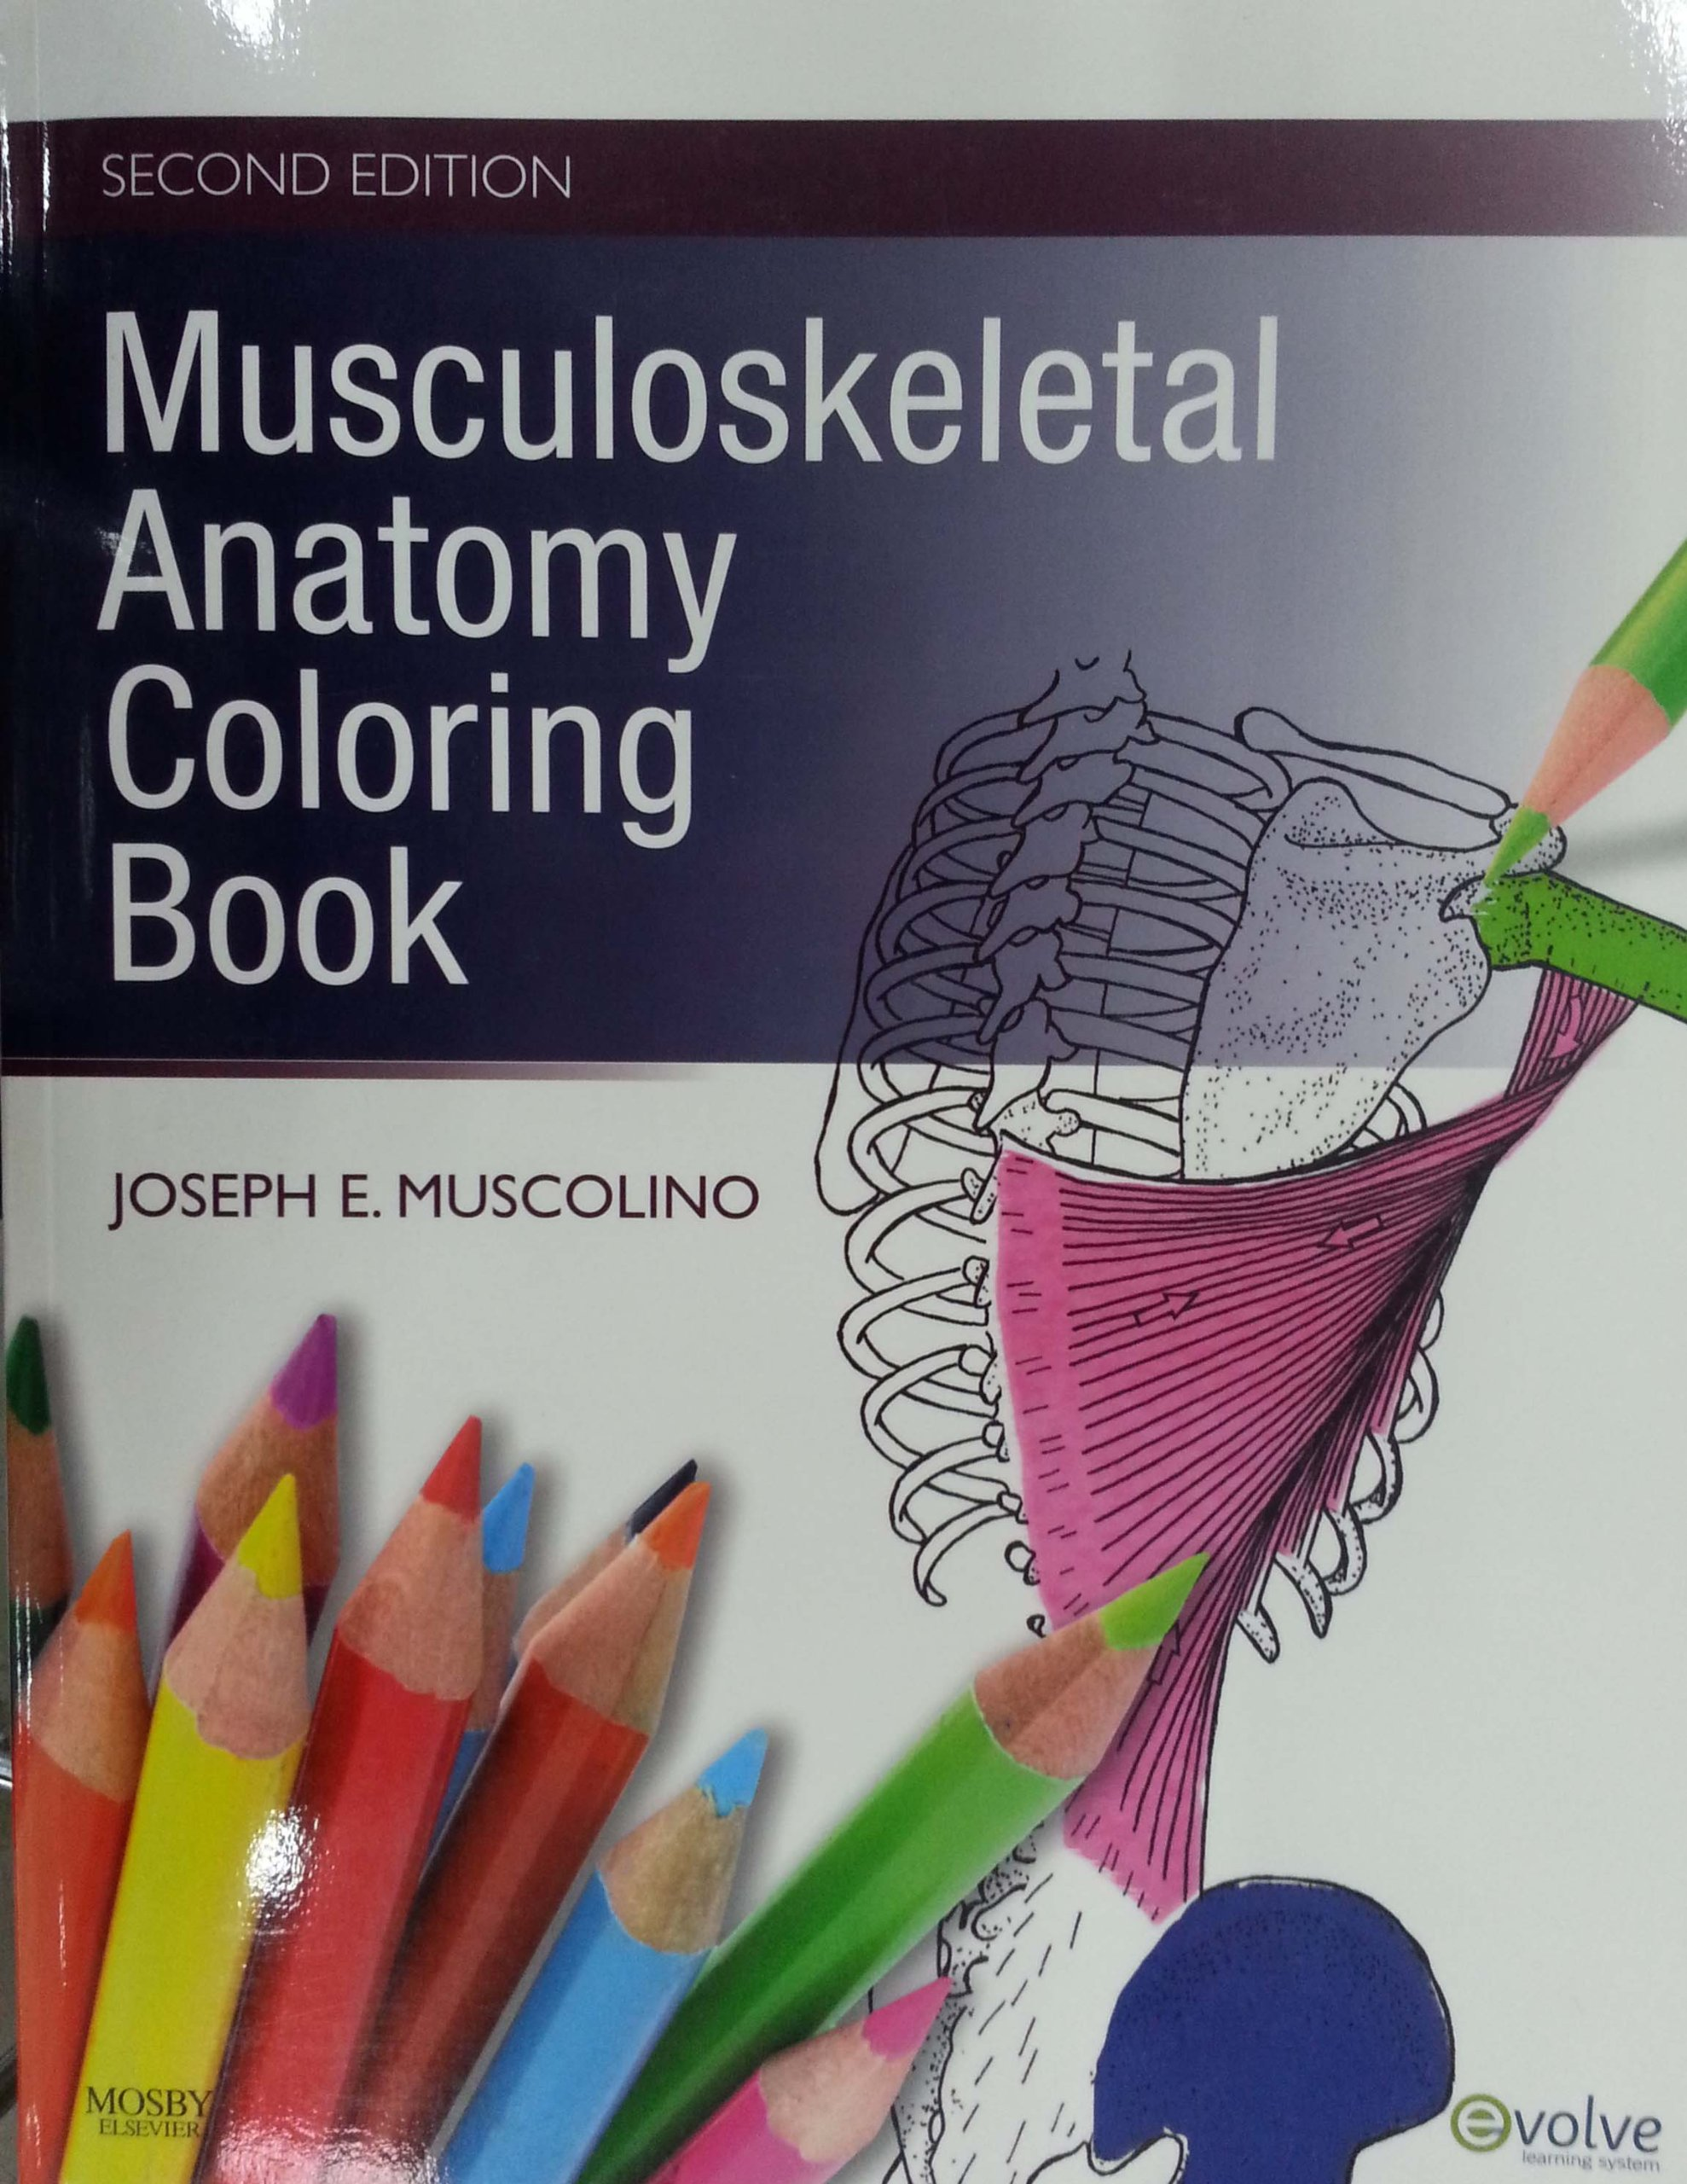 Musculoskeletal Anatomy Coloring Book, 2e: Amazon.co.uk: Joseph E ...